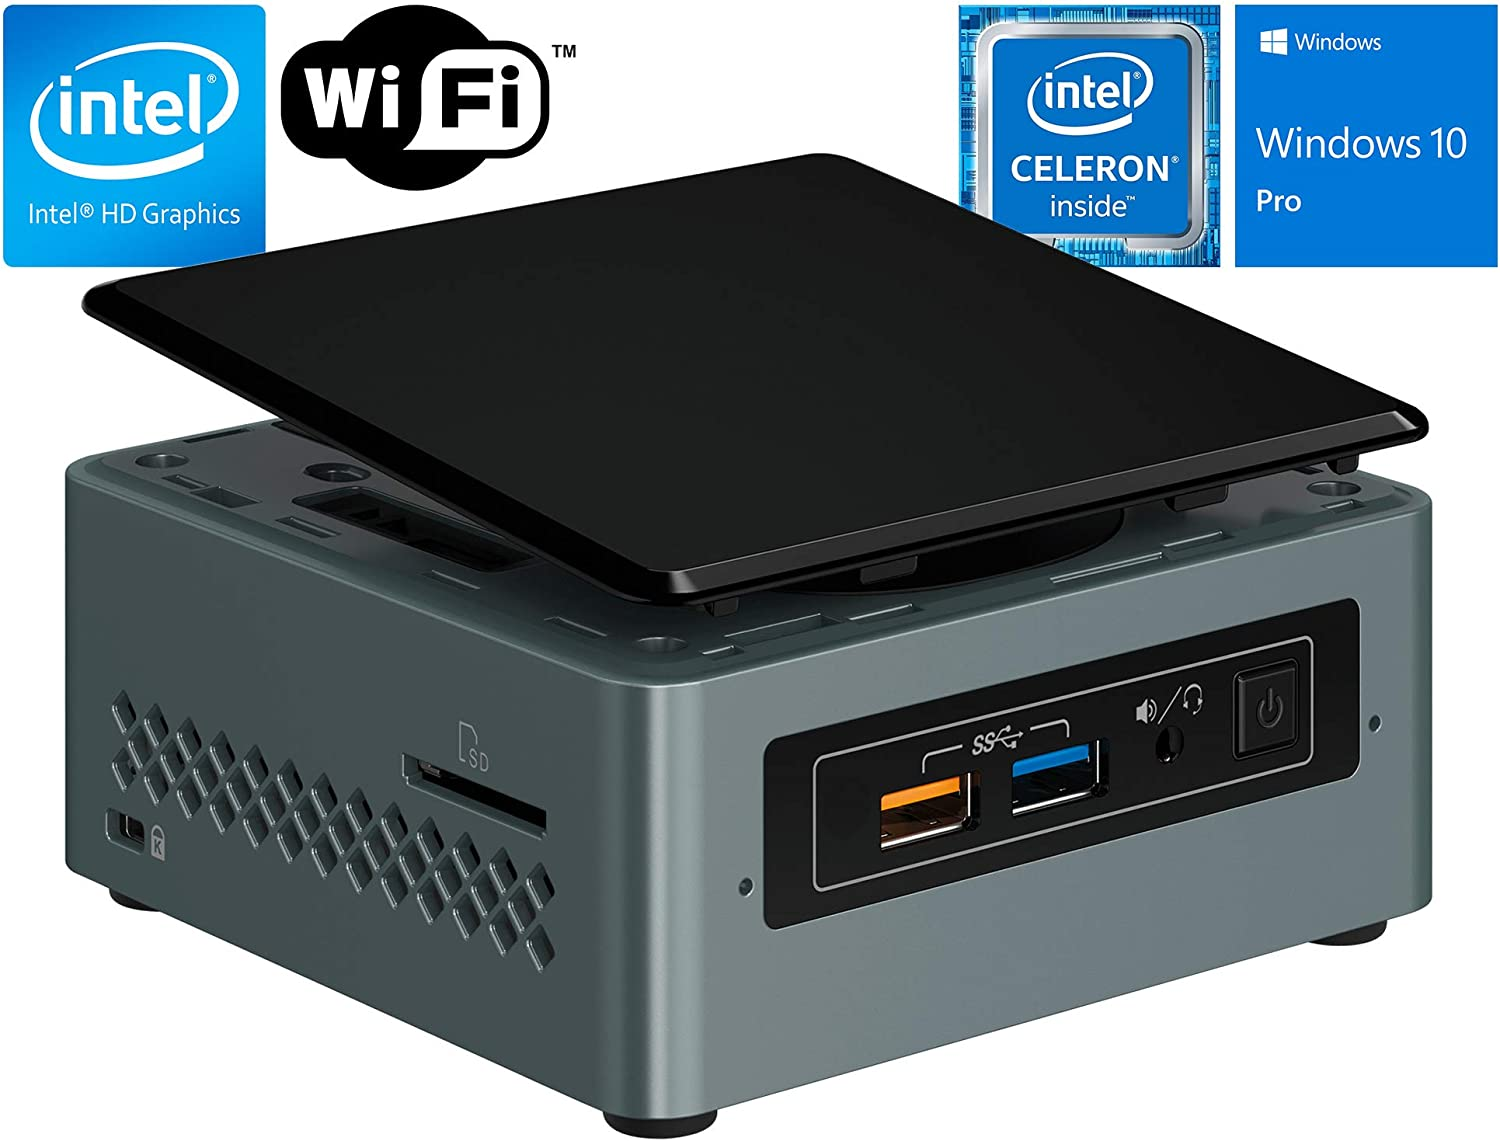 Intel NUC 6 Essential Kit (NUC6CAYH), Intel Celeron J3455, 8GB DDR3, 256GB SSD, 4k Support, Dual Monitor Capable, WiFi, Bluetooth, Windows 10 Professional 64Bit … (Celeron|Tall| 8GB Ram + 256GB SSD)